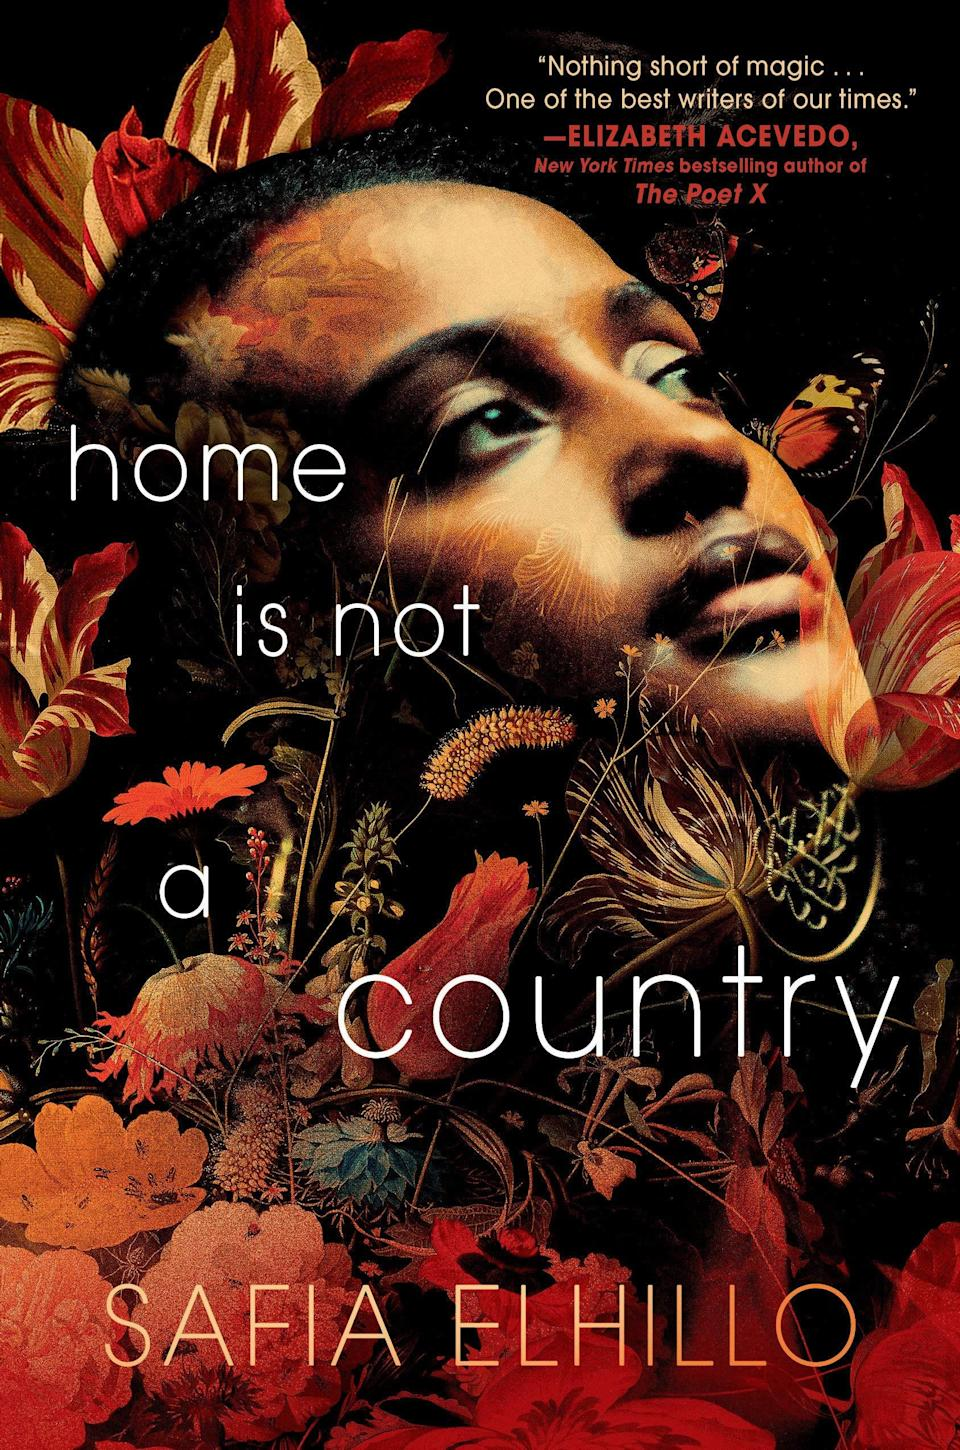 <p>Told in verse, <span><strong>Home Is Not a Country</strong></span> by Safia Elhillo is a mesmerizing novel about one young woman's struggle to find her place in the world. For Nima, there's nowhere she feels she fits in - not with her mother, who didn't grow up in America, and not with her peers who make her feel like she's always on the outside looking in. But when Nima is confronted with the different path her life could have taken, she'll have to fight to keep the identity she's never fully accepted. </p> <p><em>Out March 2</em></p>